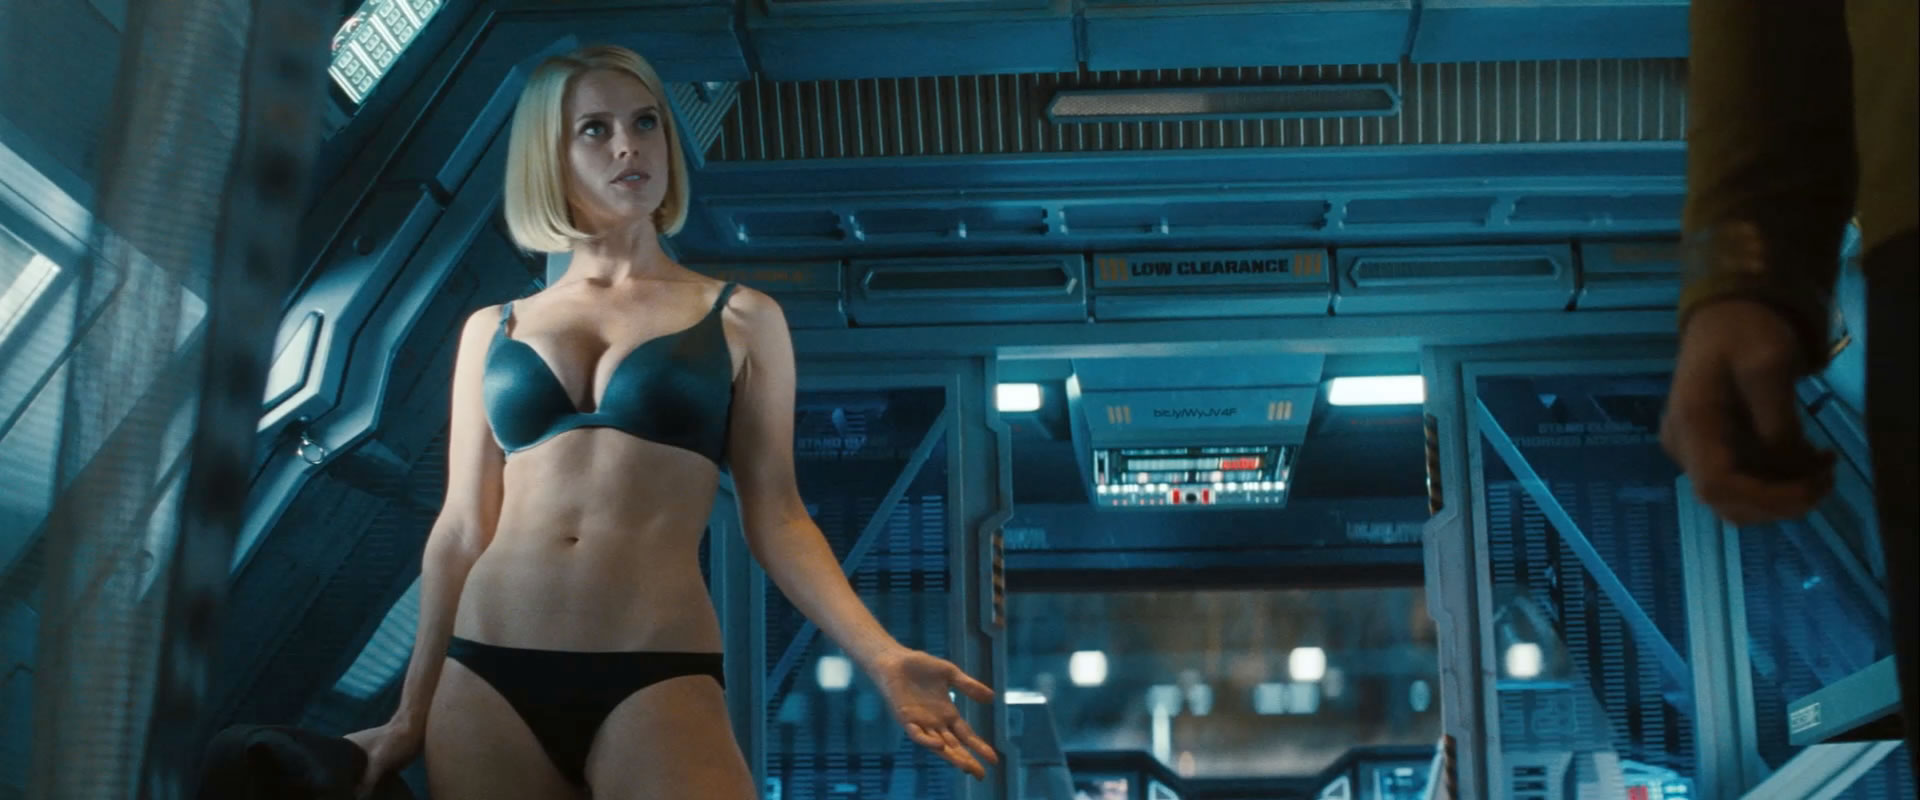 Alice Eve wearing bra and panties (lingerie) in Star Trek Into Darkness Star Trek Into Darkness Blu-ray out September 10th